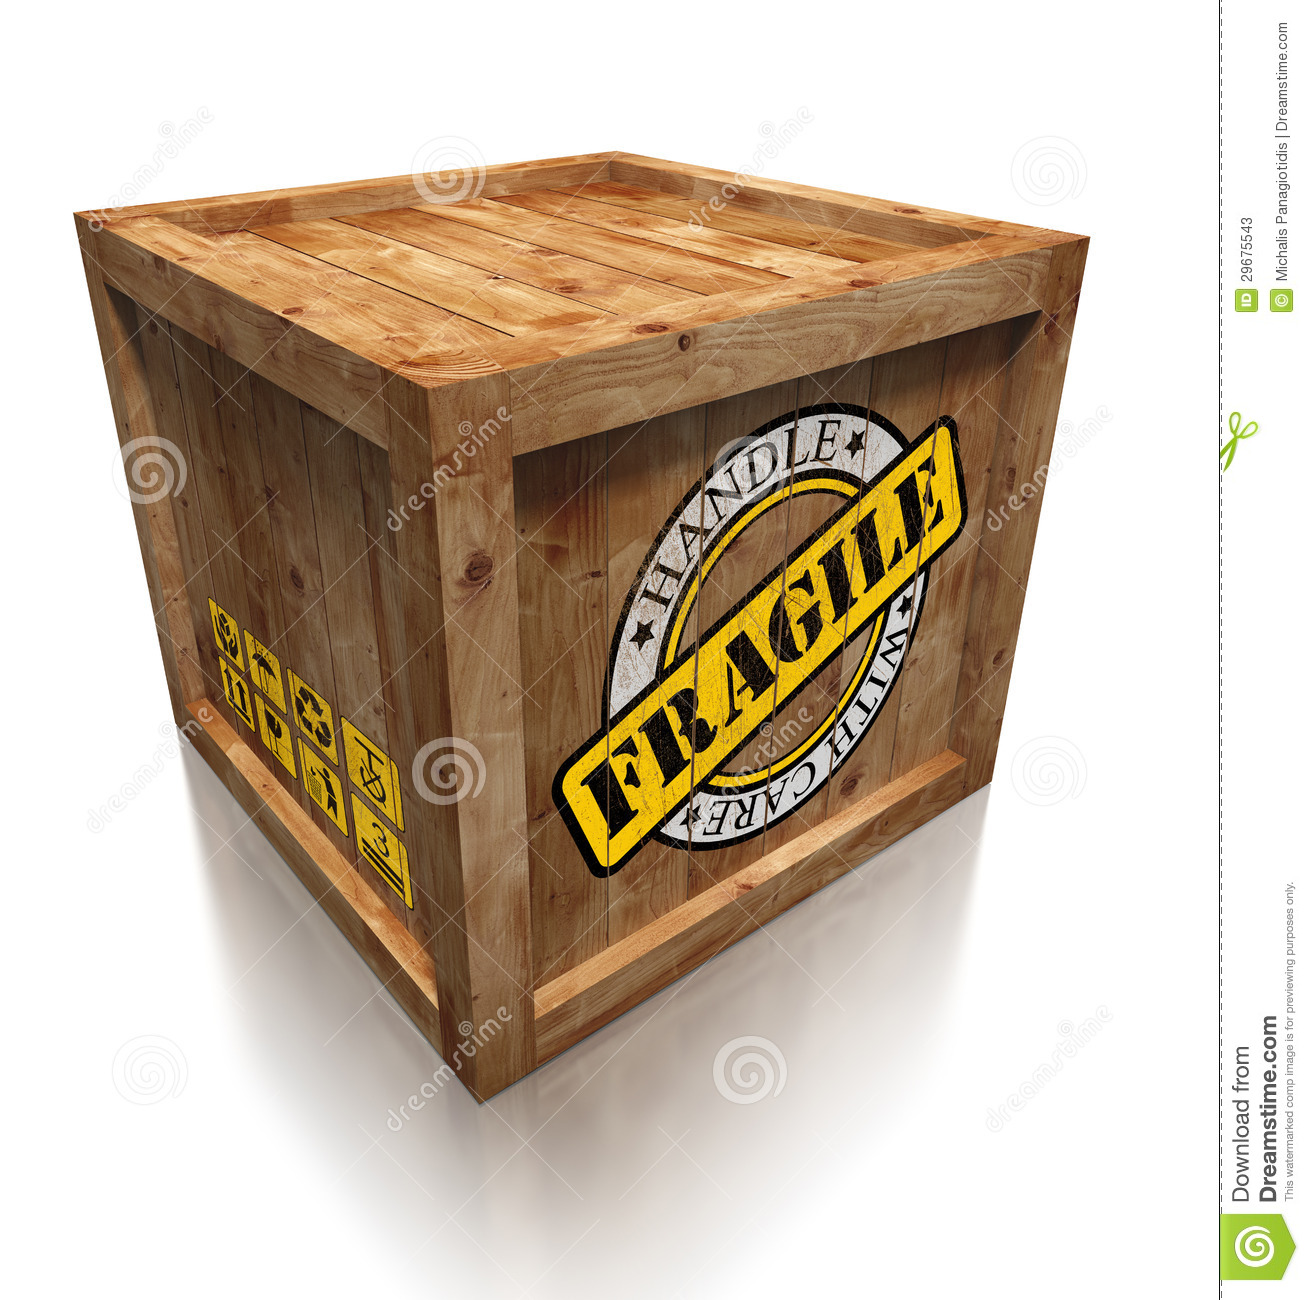 Wooden Box Crate With Grunge Fragile Symbol Stock